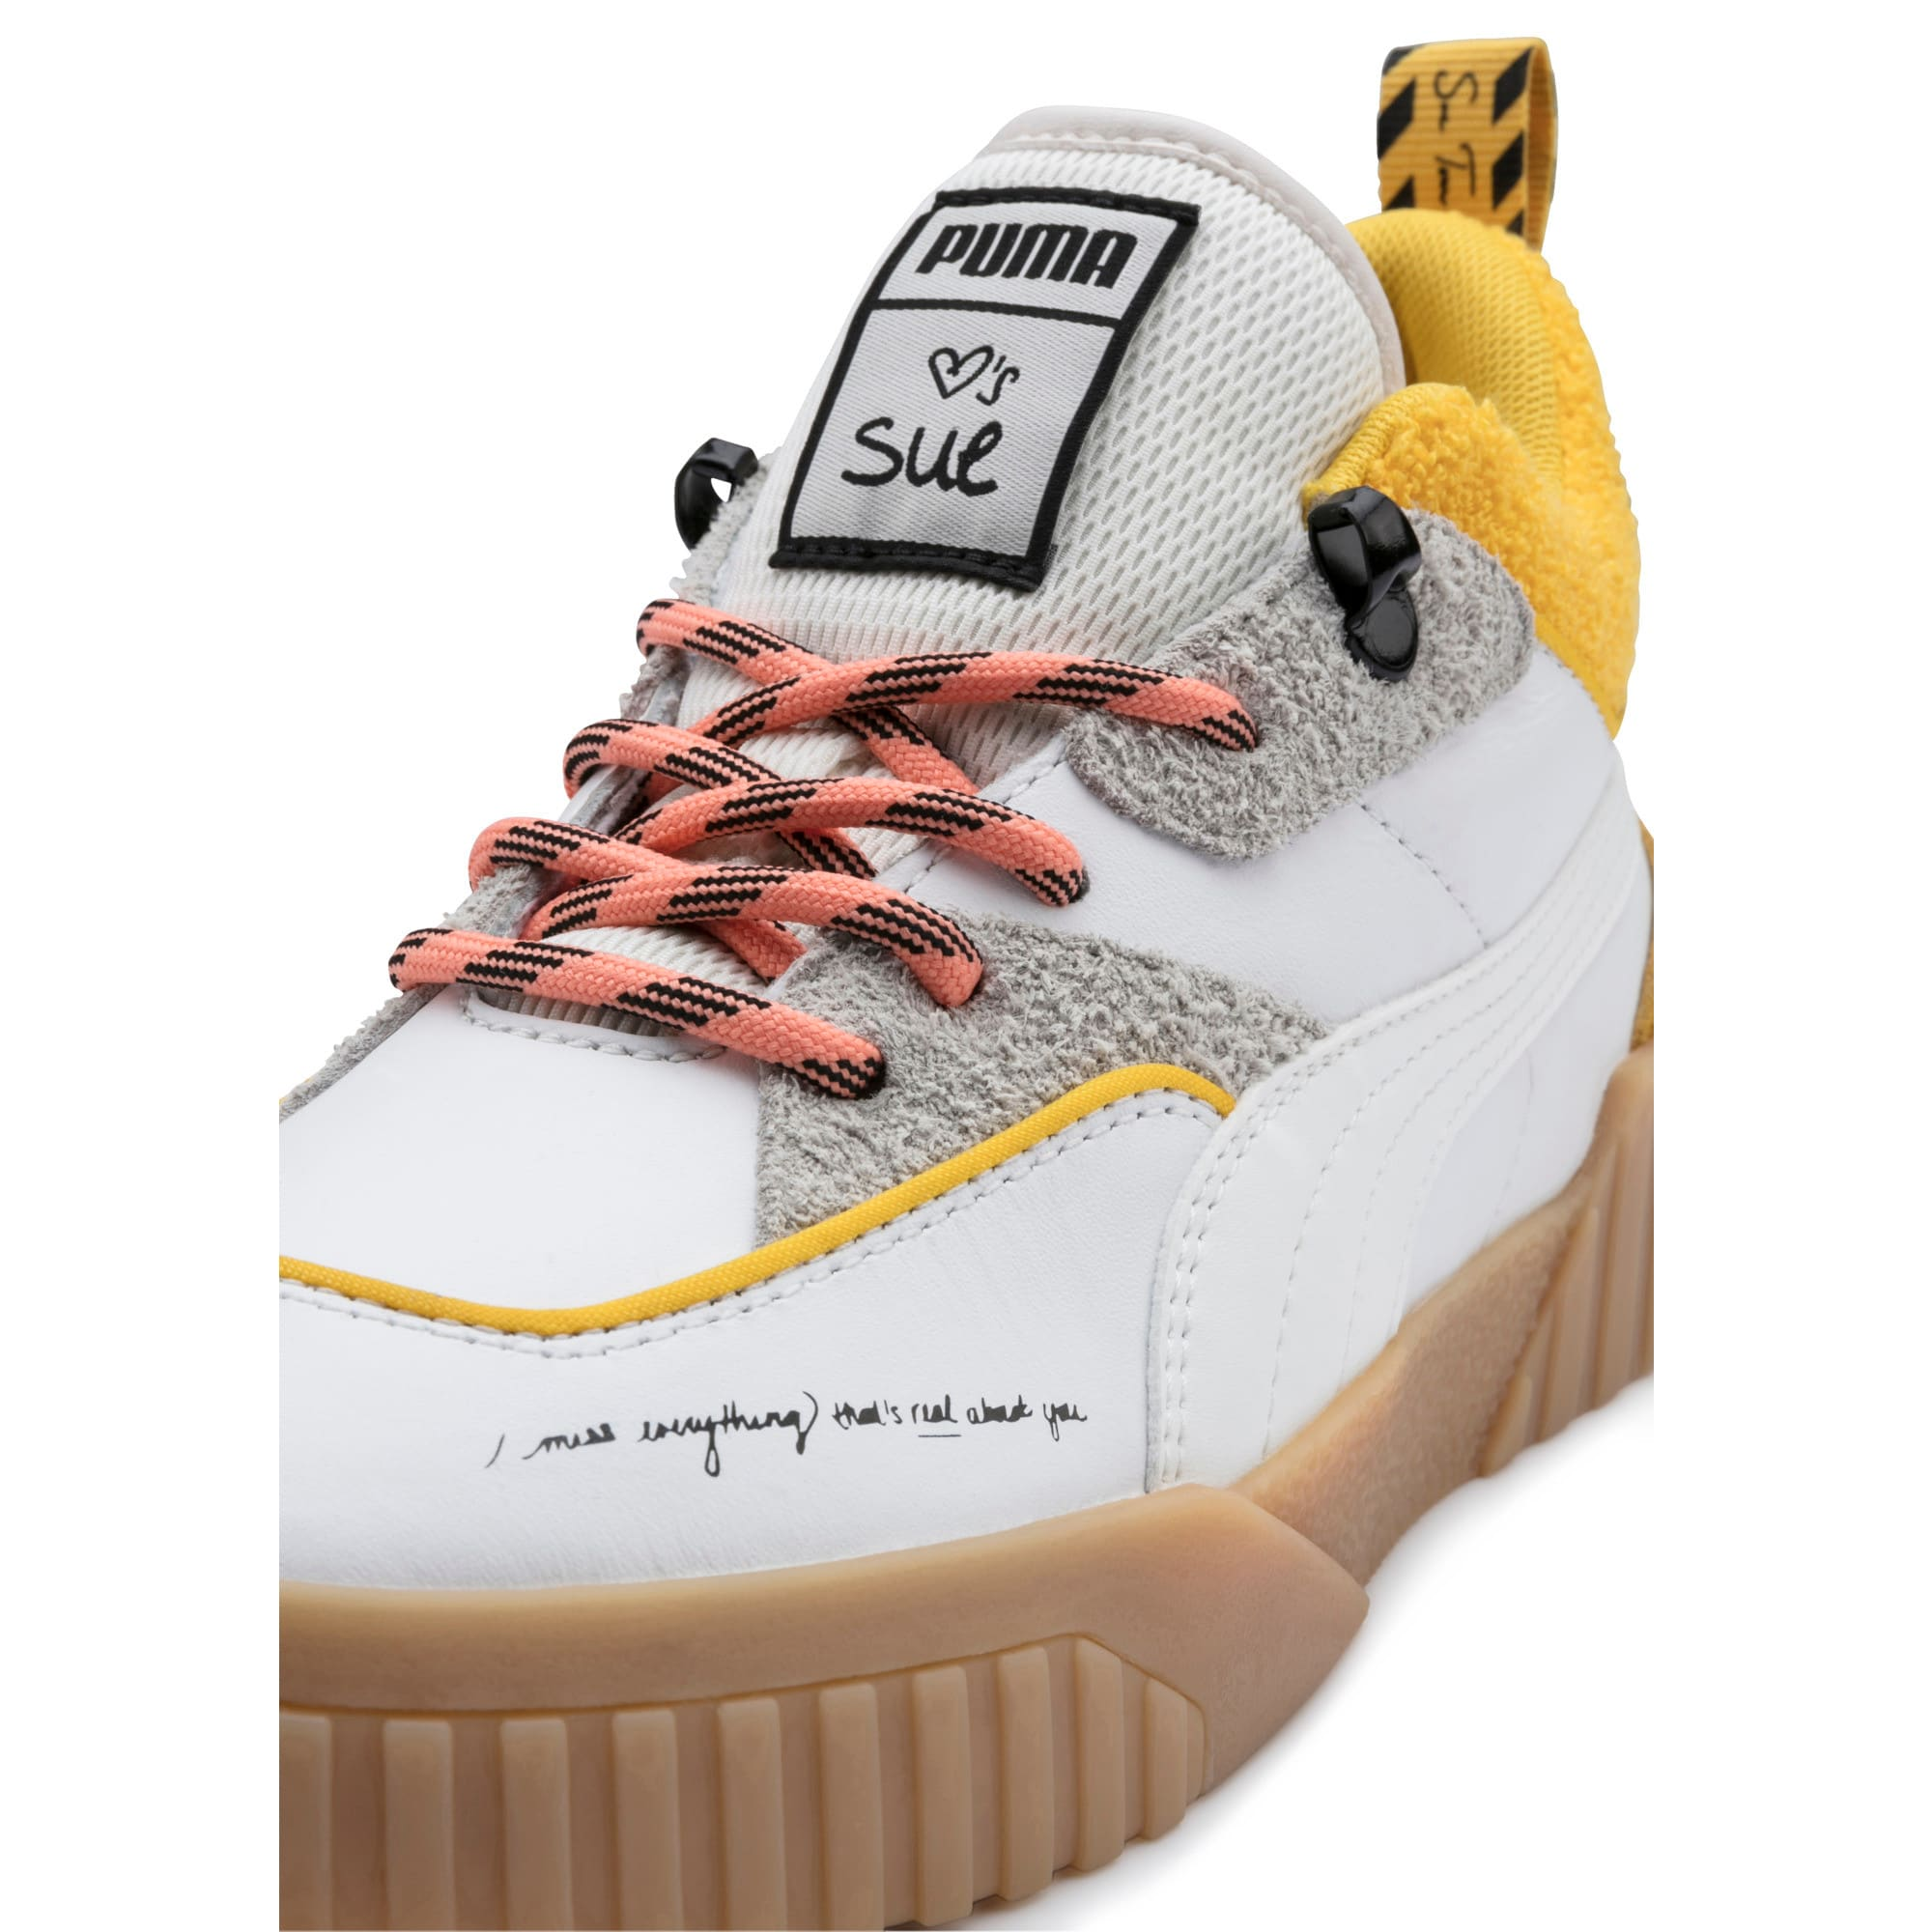 Thumbnail 7 of PUMA x SUE TSAI Cali Women's Trainers, Bright White-Bright White, medium-IND